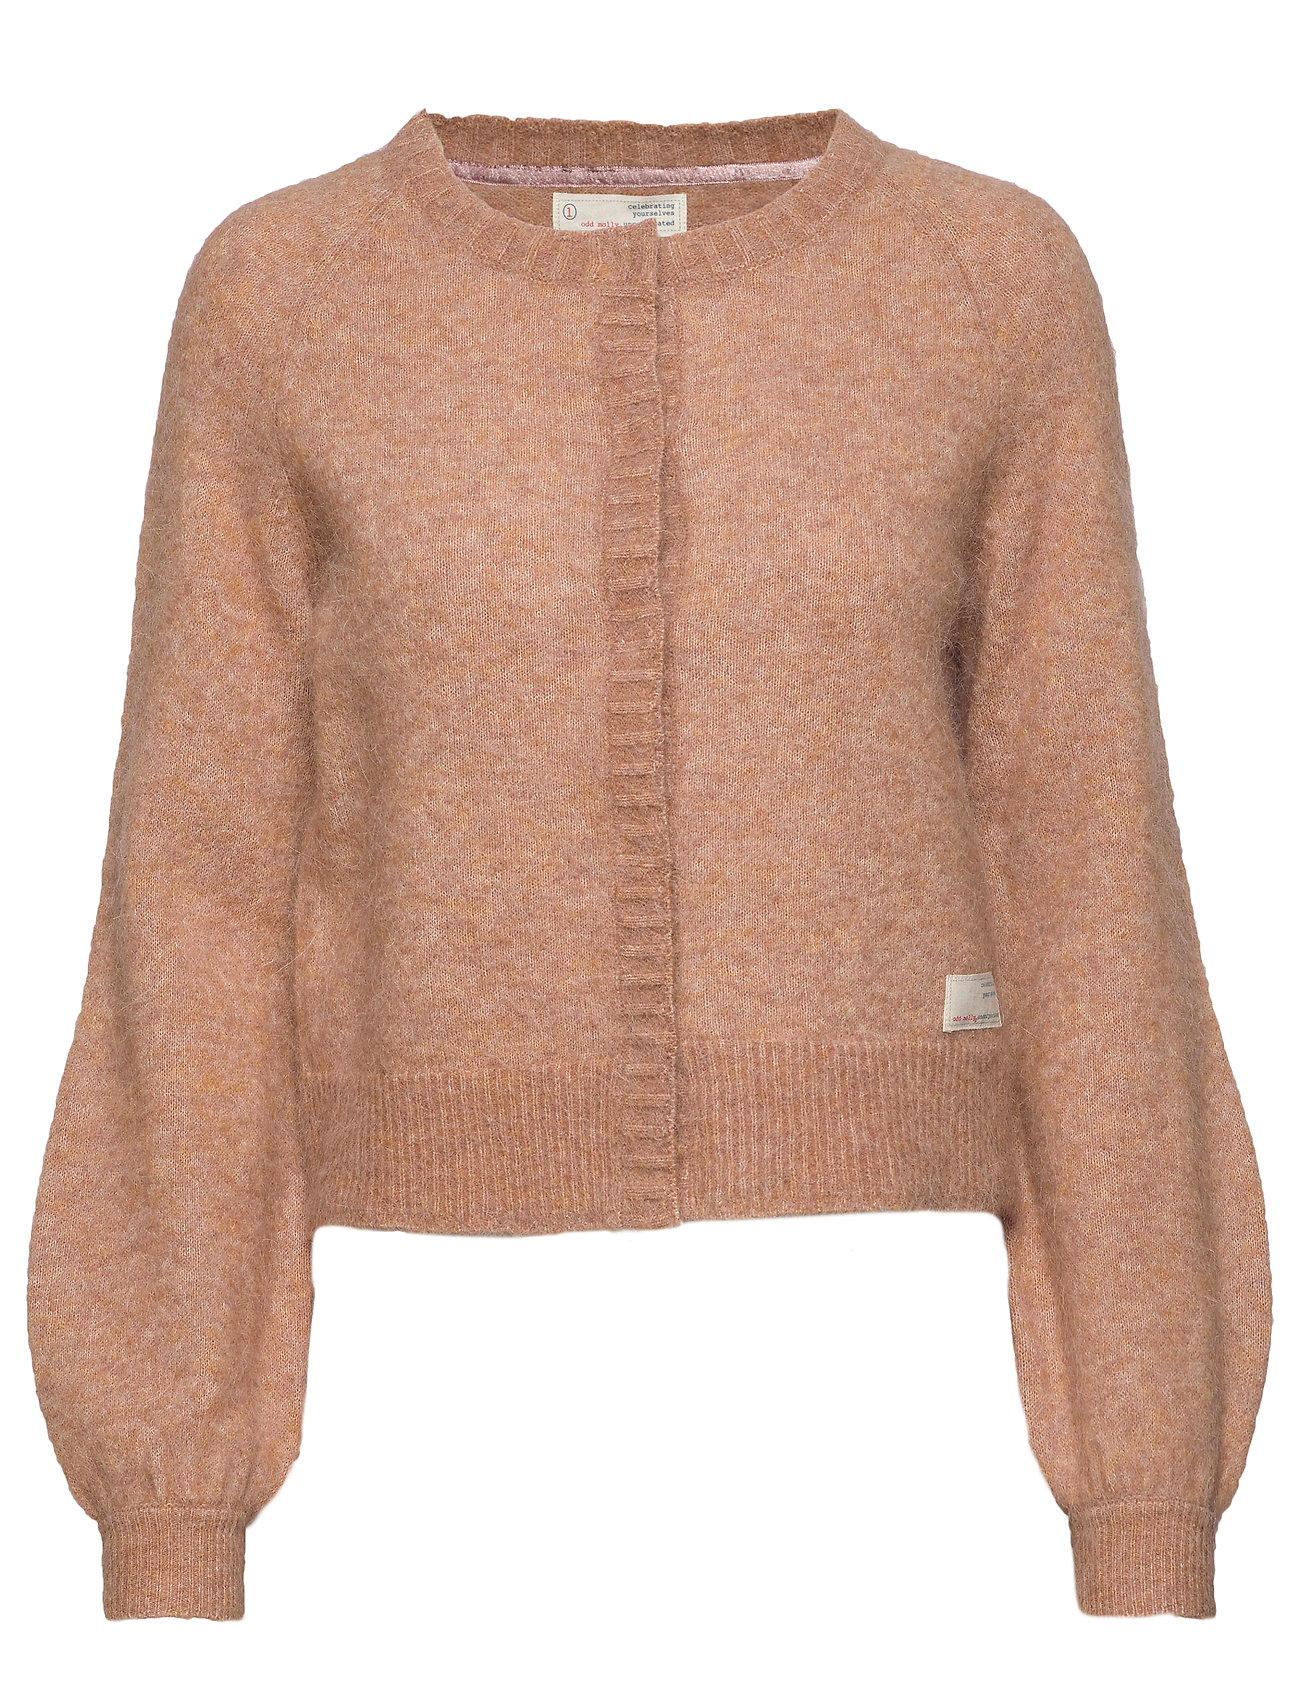 ODD MOLLY Cool With Wool Cardigan - CHOCOLATE CREAM